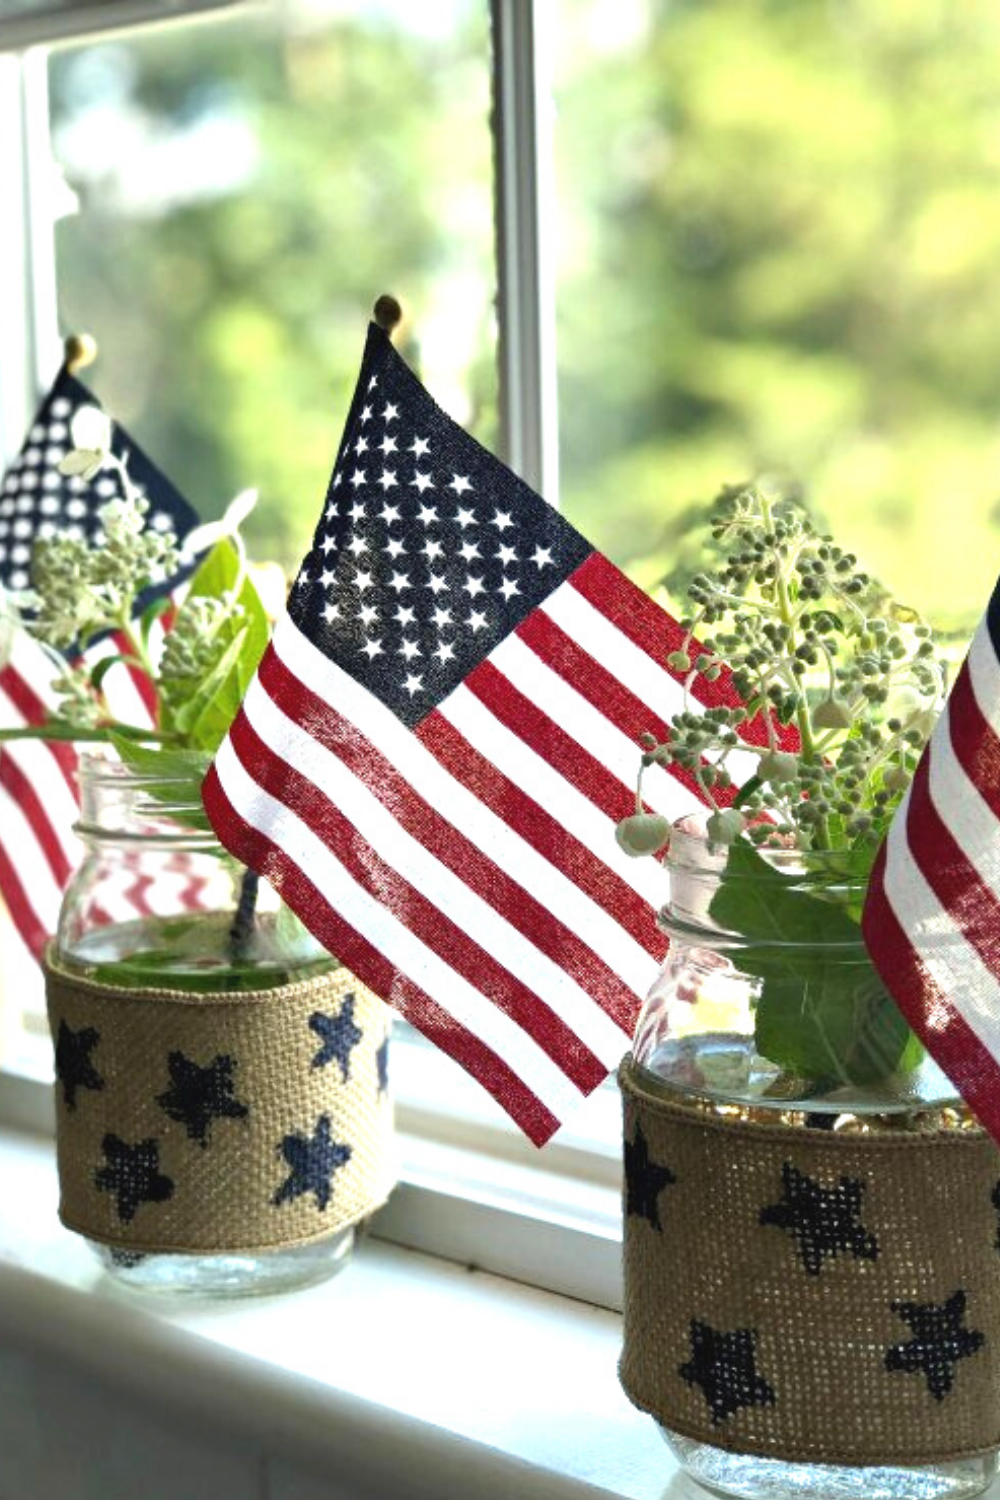 American Flags in glass jars with burlap and stars